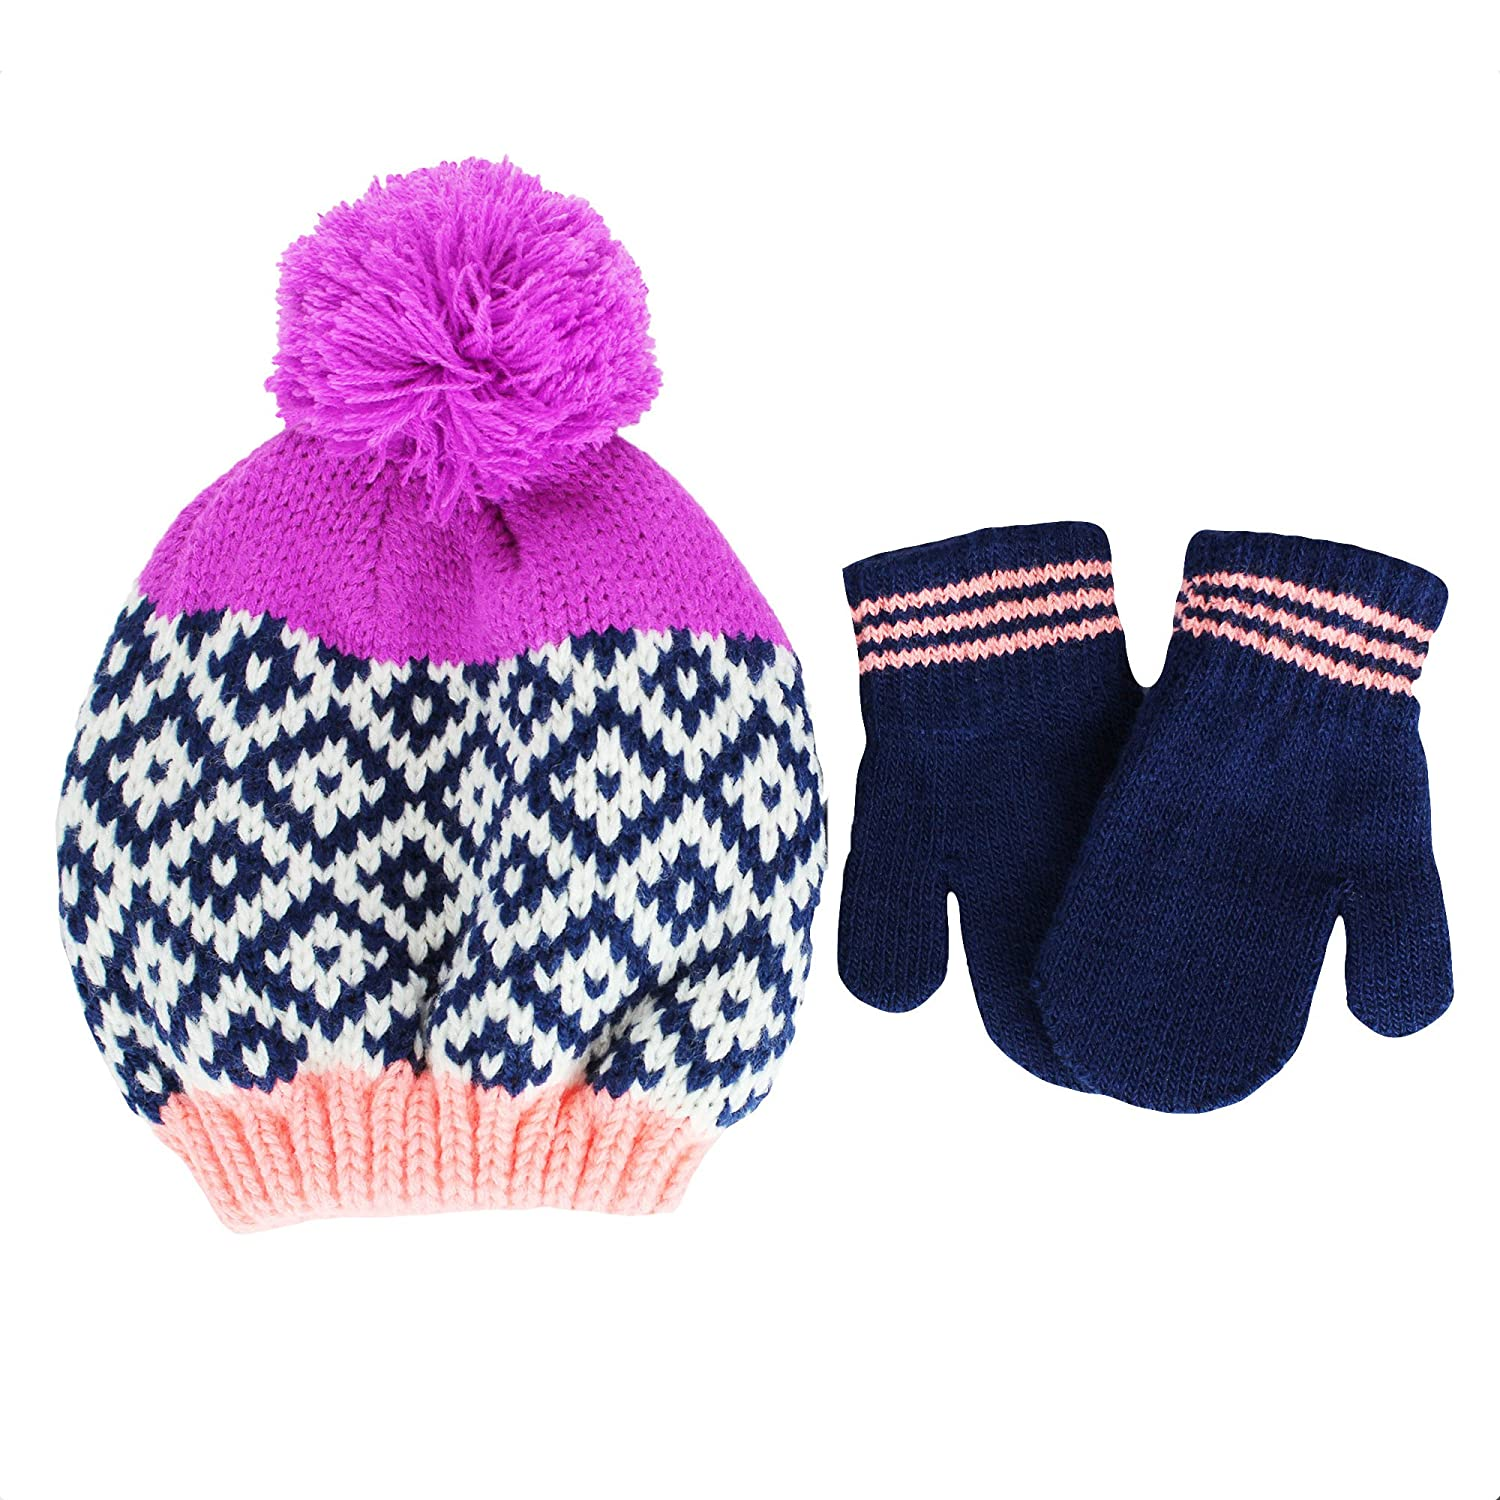 Amazon.com  Carter s Infant Girls Knit Winter Ski Hat and Mittens 12-24  mths Navy Purple  Clothing f2856d7ac8e